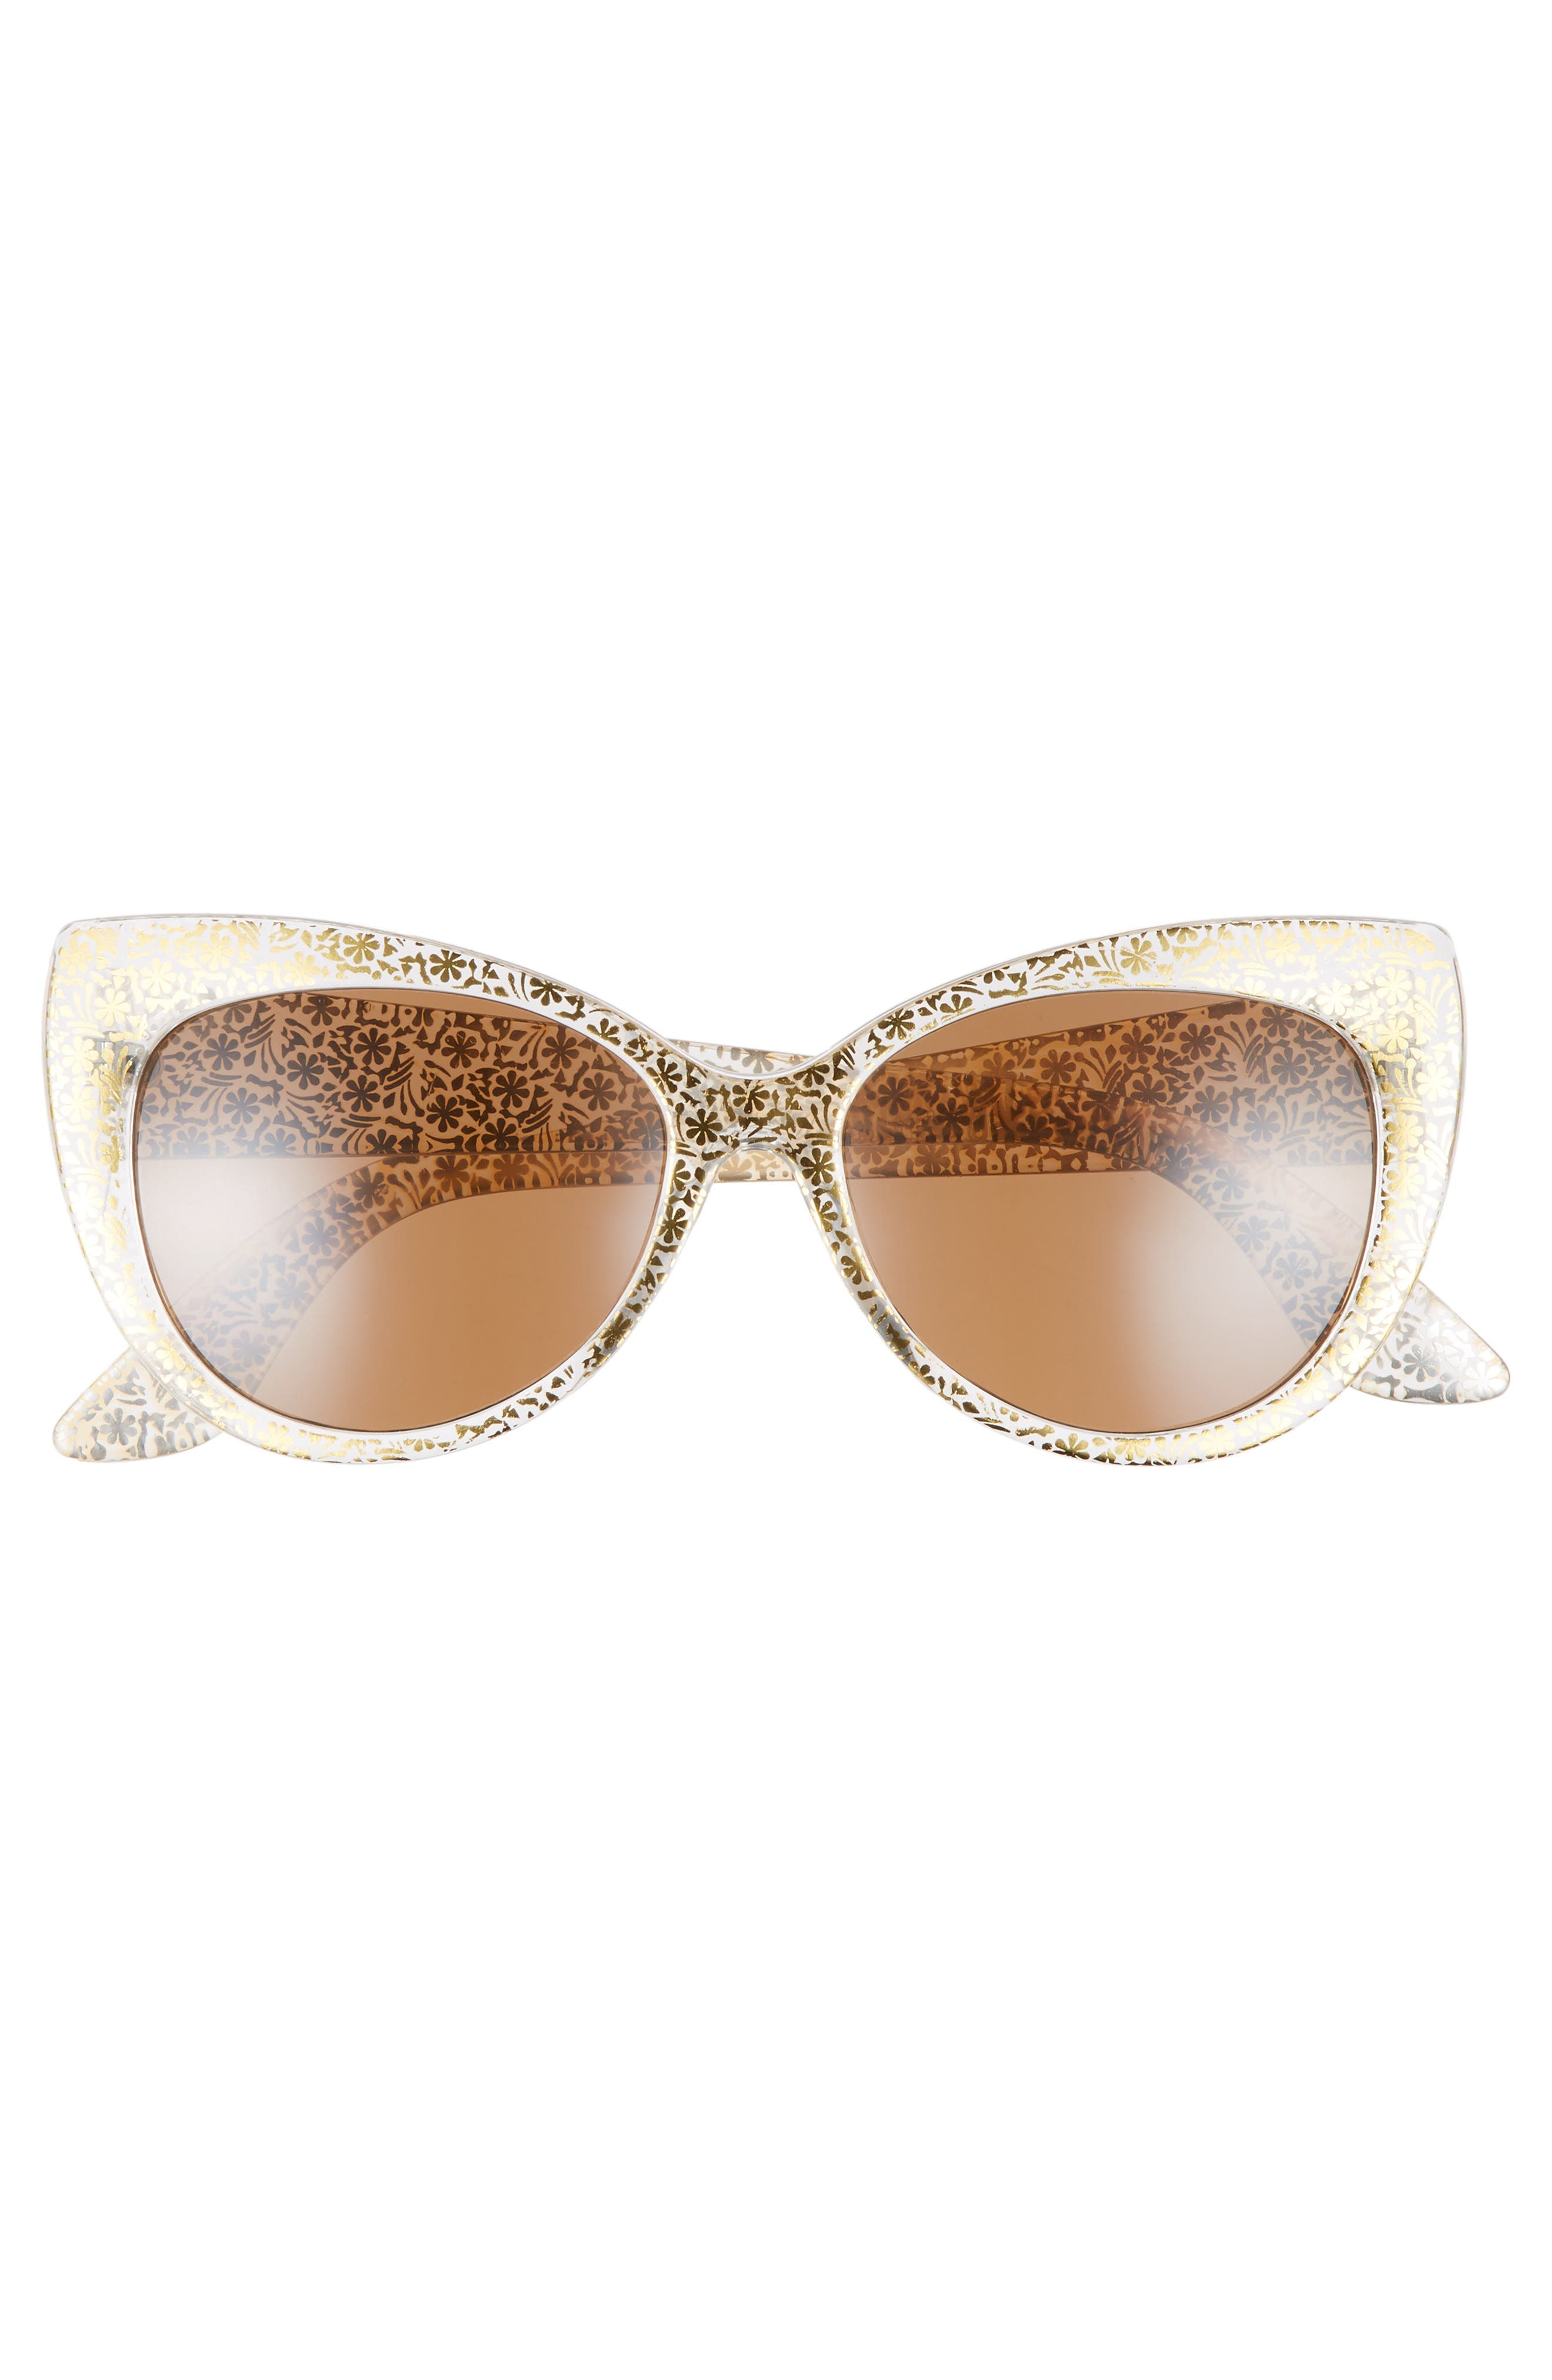 55mm Floral Cat Eye Sunglasses,                             Alternate thumbnail 3, color,                             Gold/ Gold